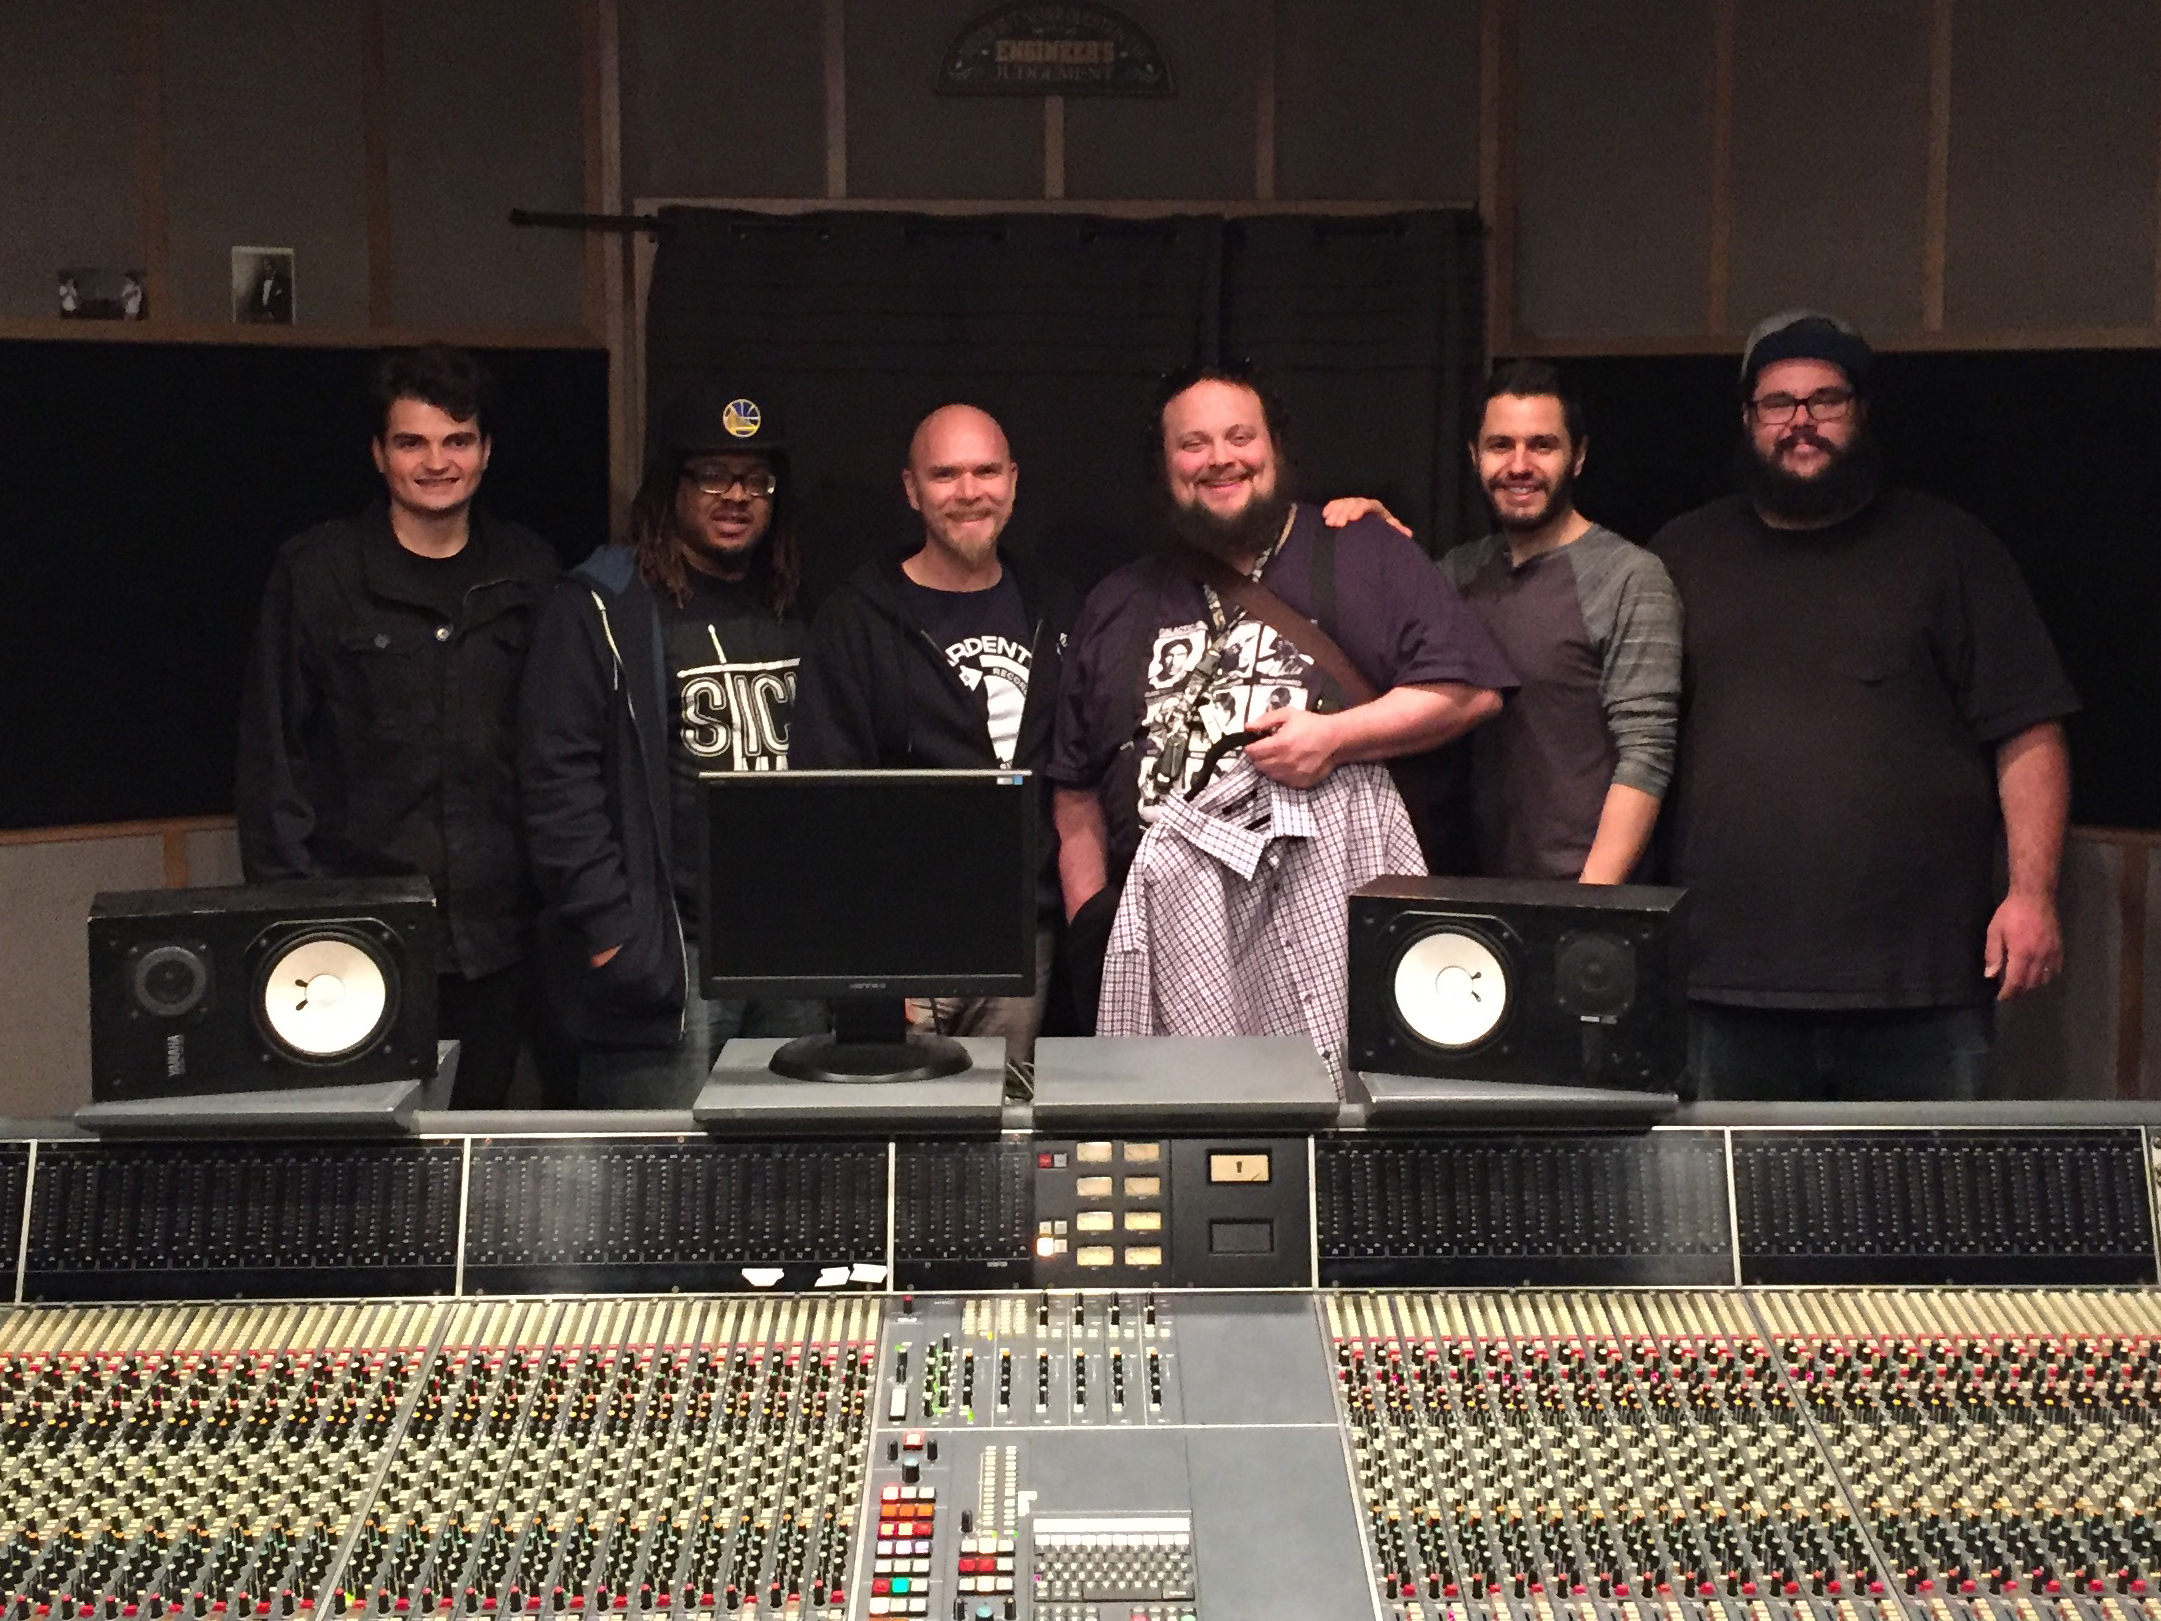 Studio A: Pat Harrington, Terry Grayson, Mike Wilson (engineer), Victor Wainwright, Dave Gross (producer/engineer), Billy Dean